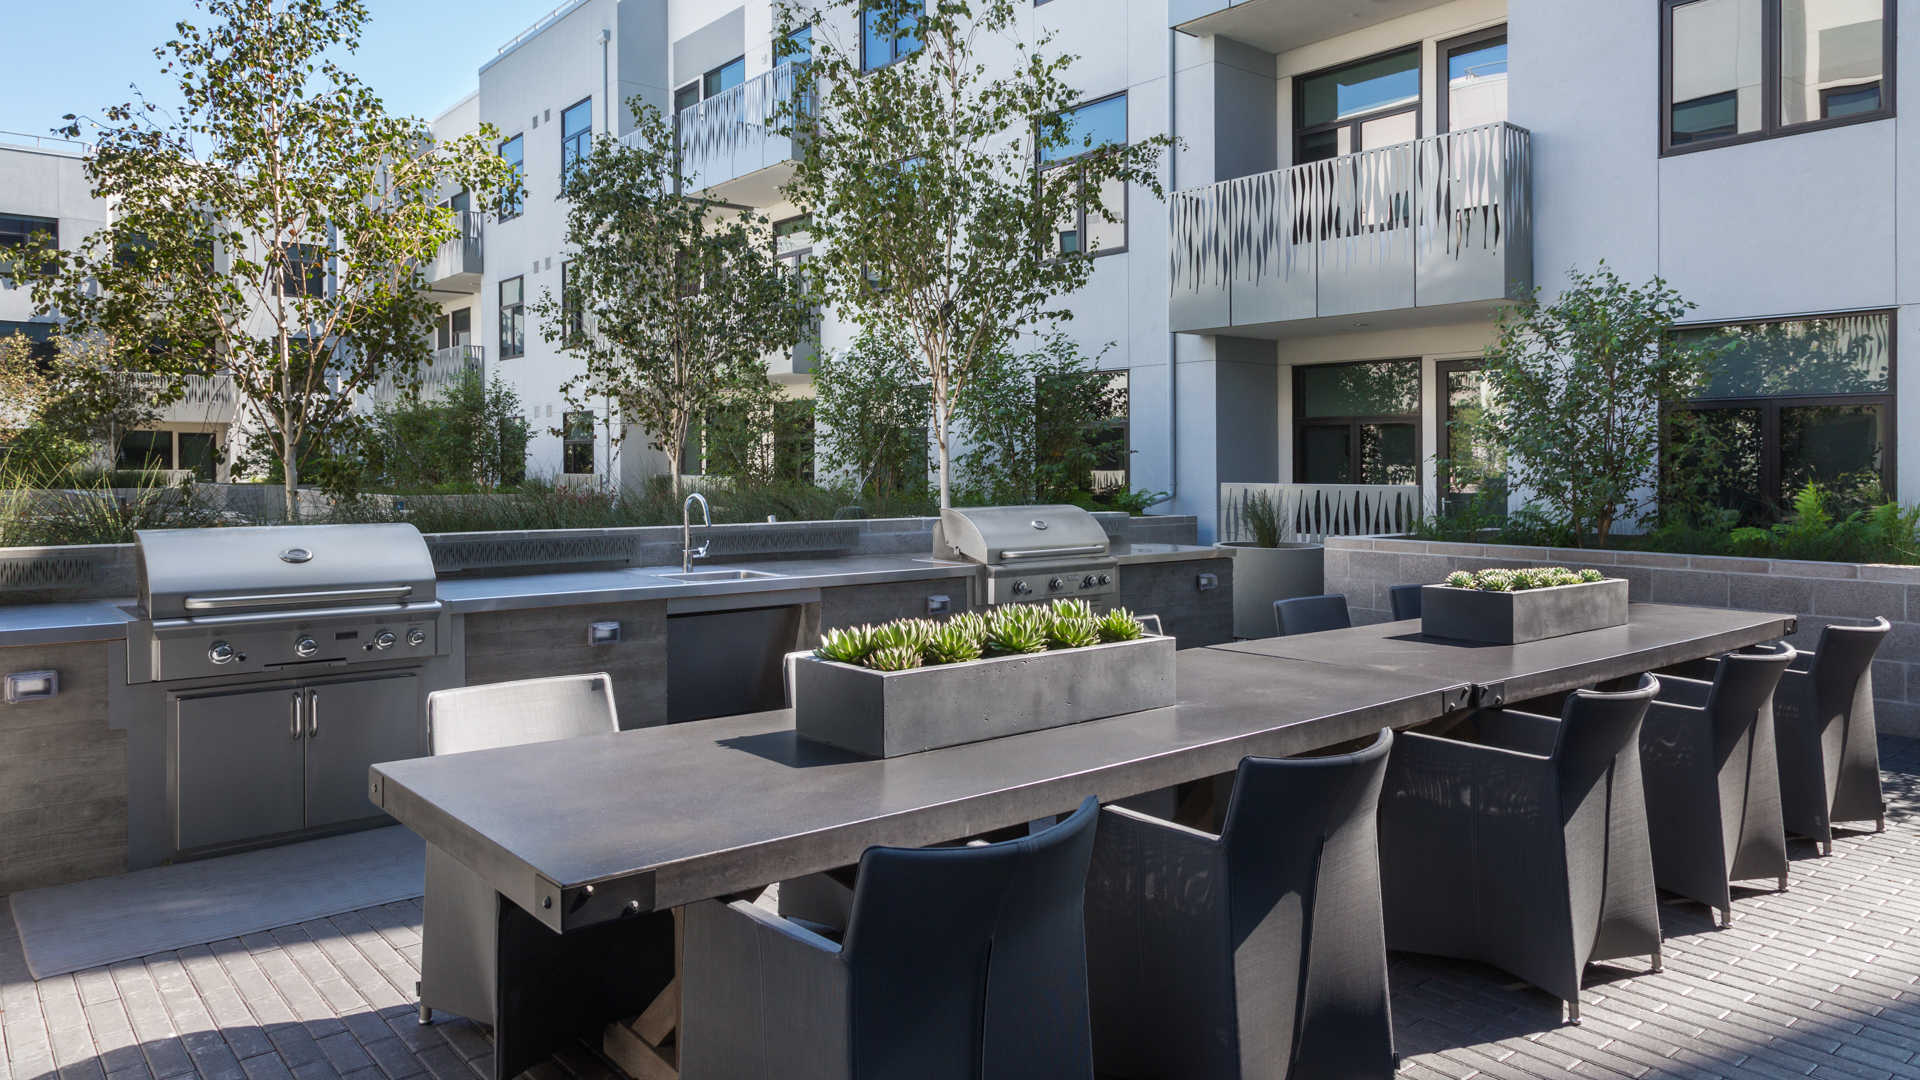 Azure apartments outdoor grilling area